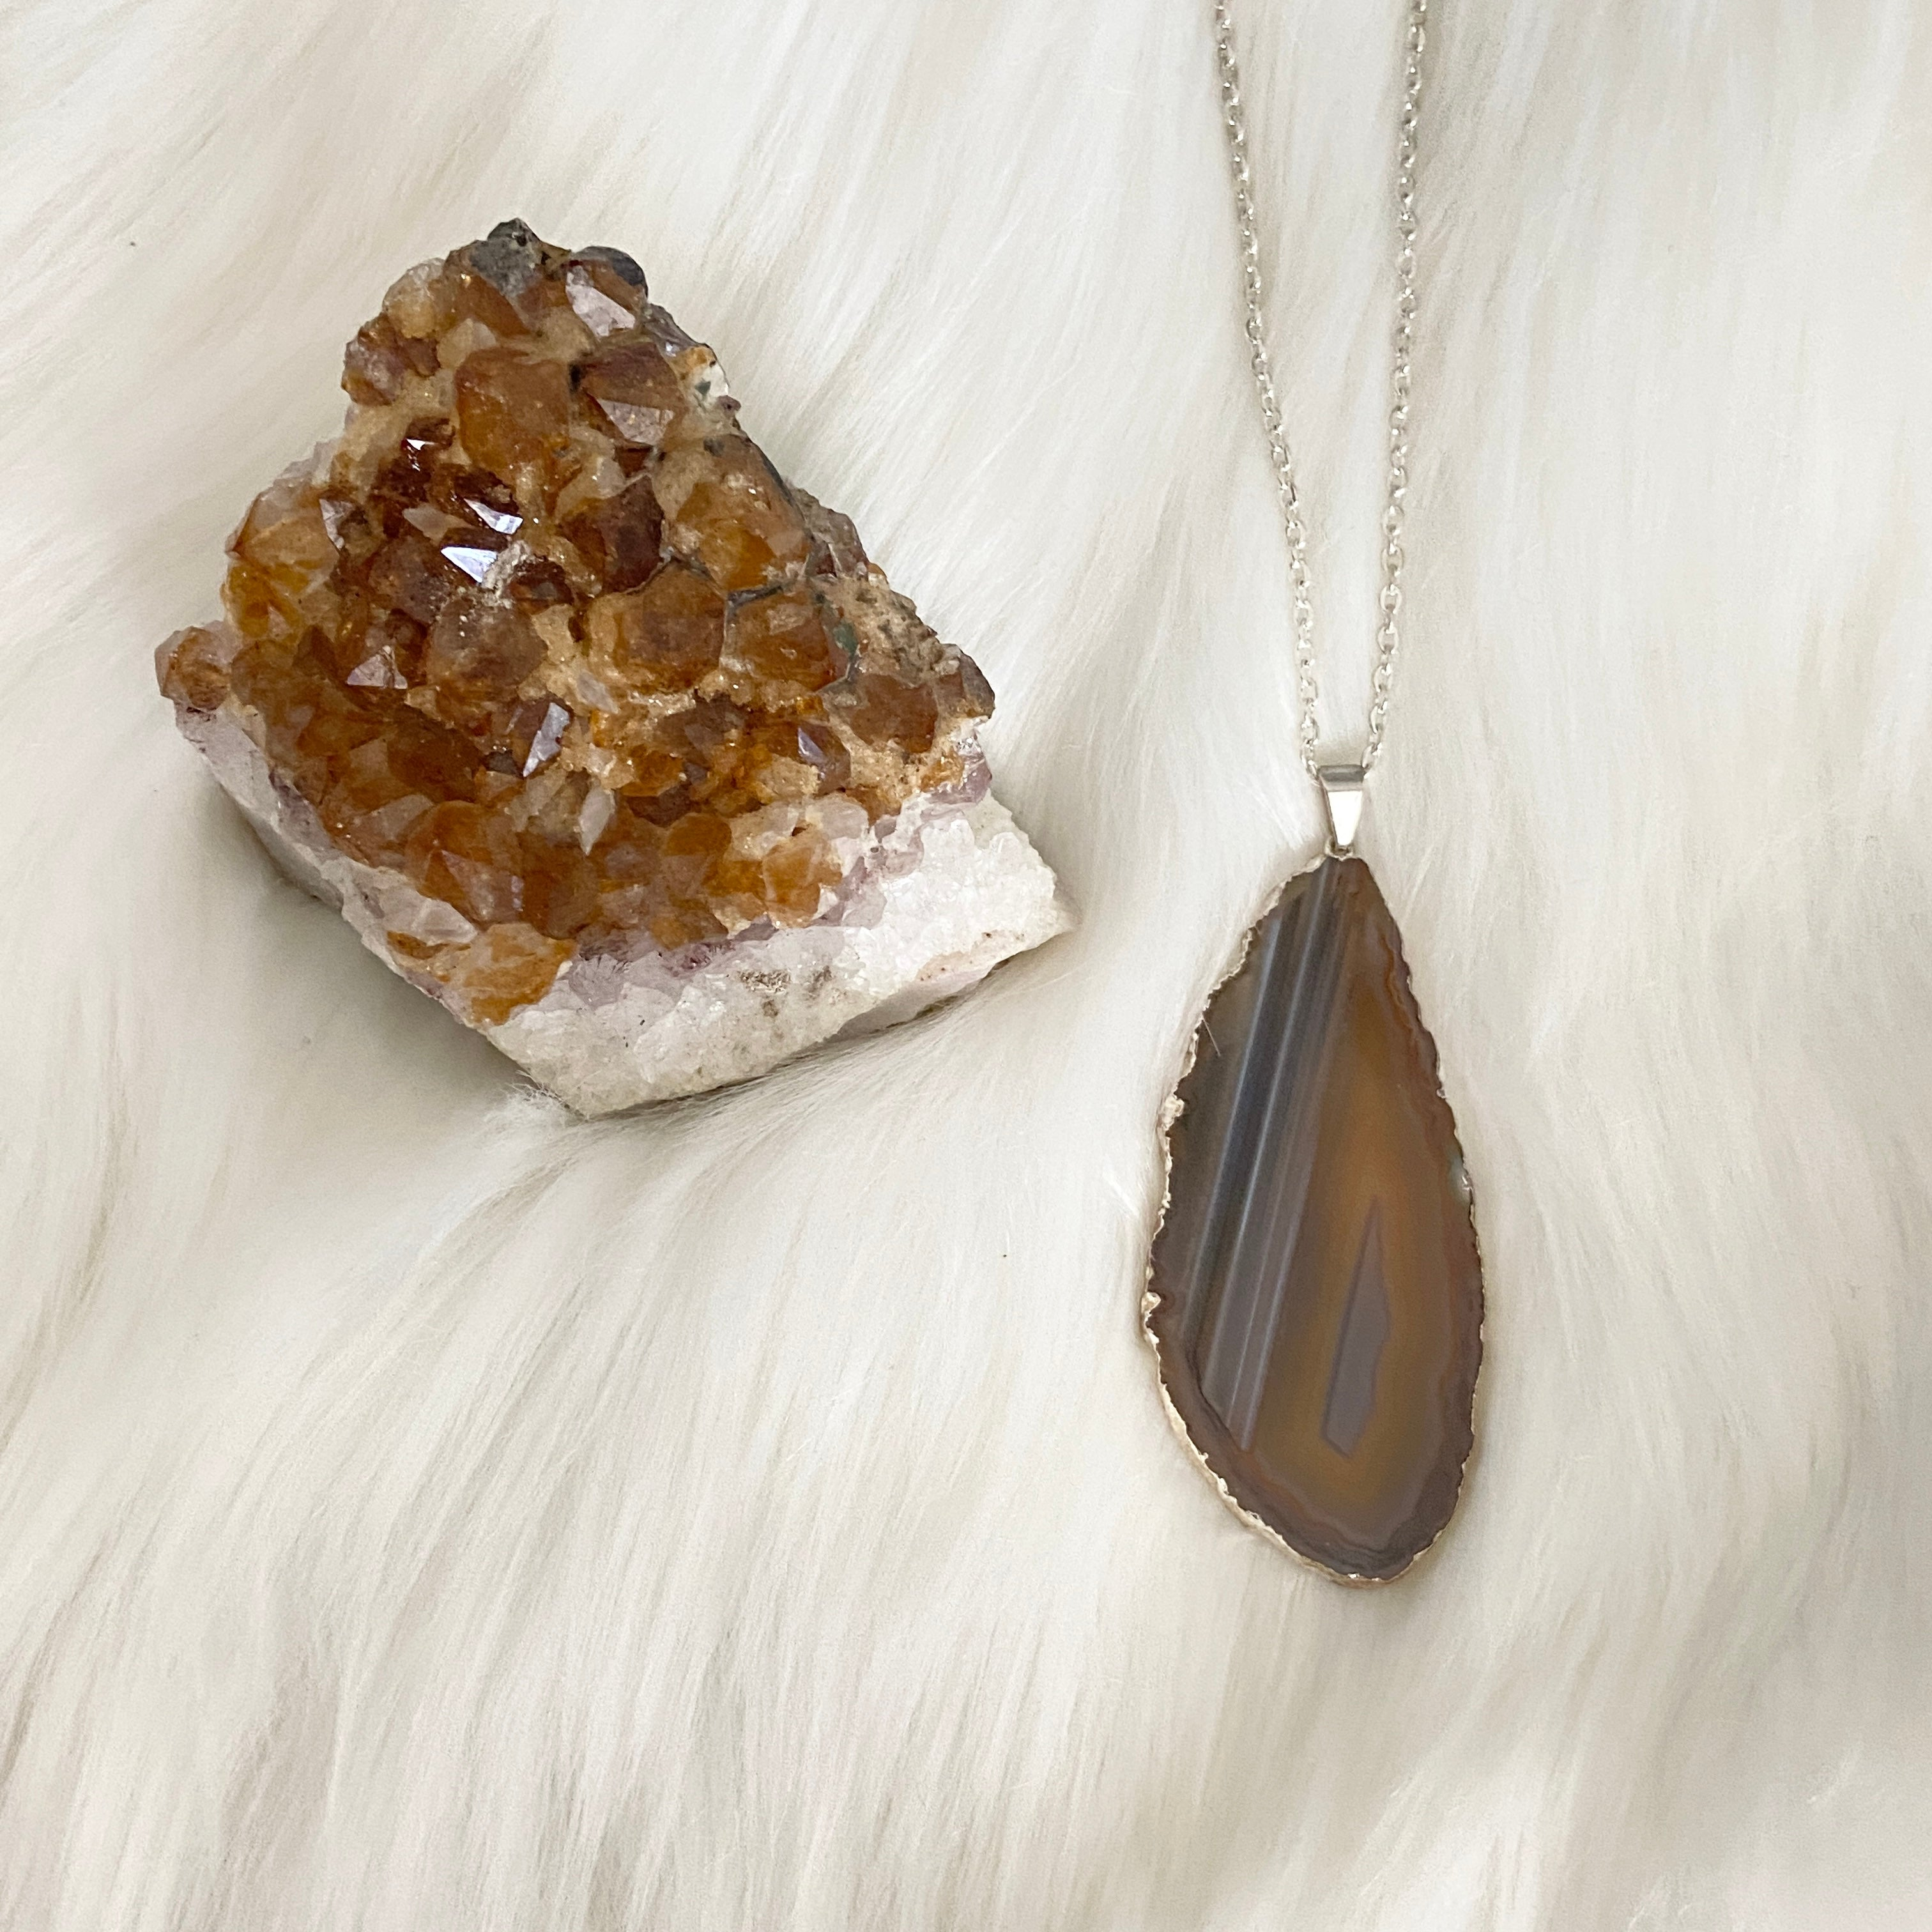 Upcycled fabric and natural agate slice necklace  rustic jewelry  olive  earthy  earth tones  woodsy witch  nature punk  shabby boho